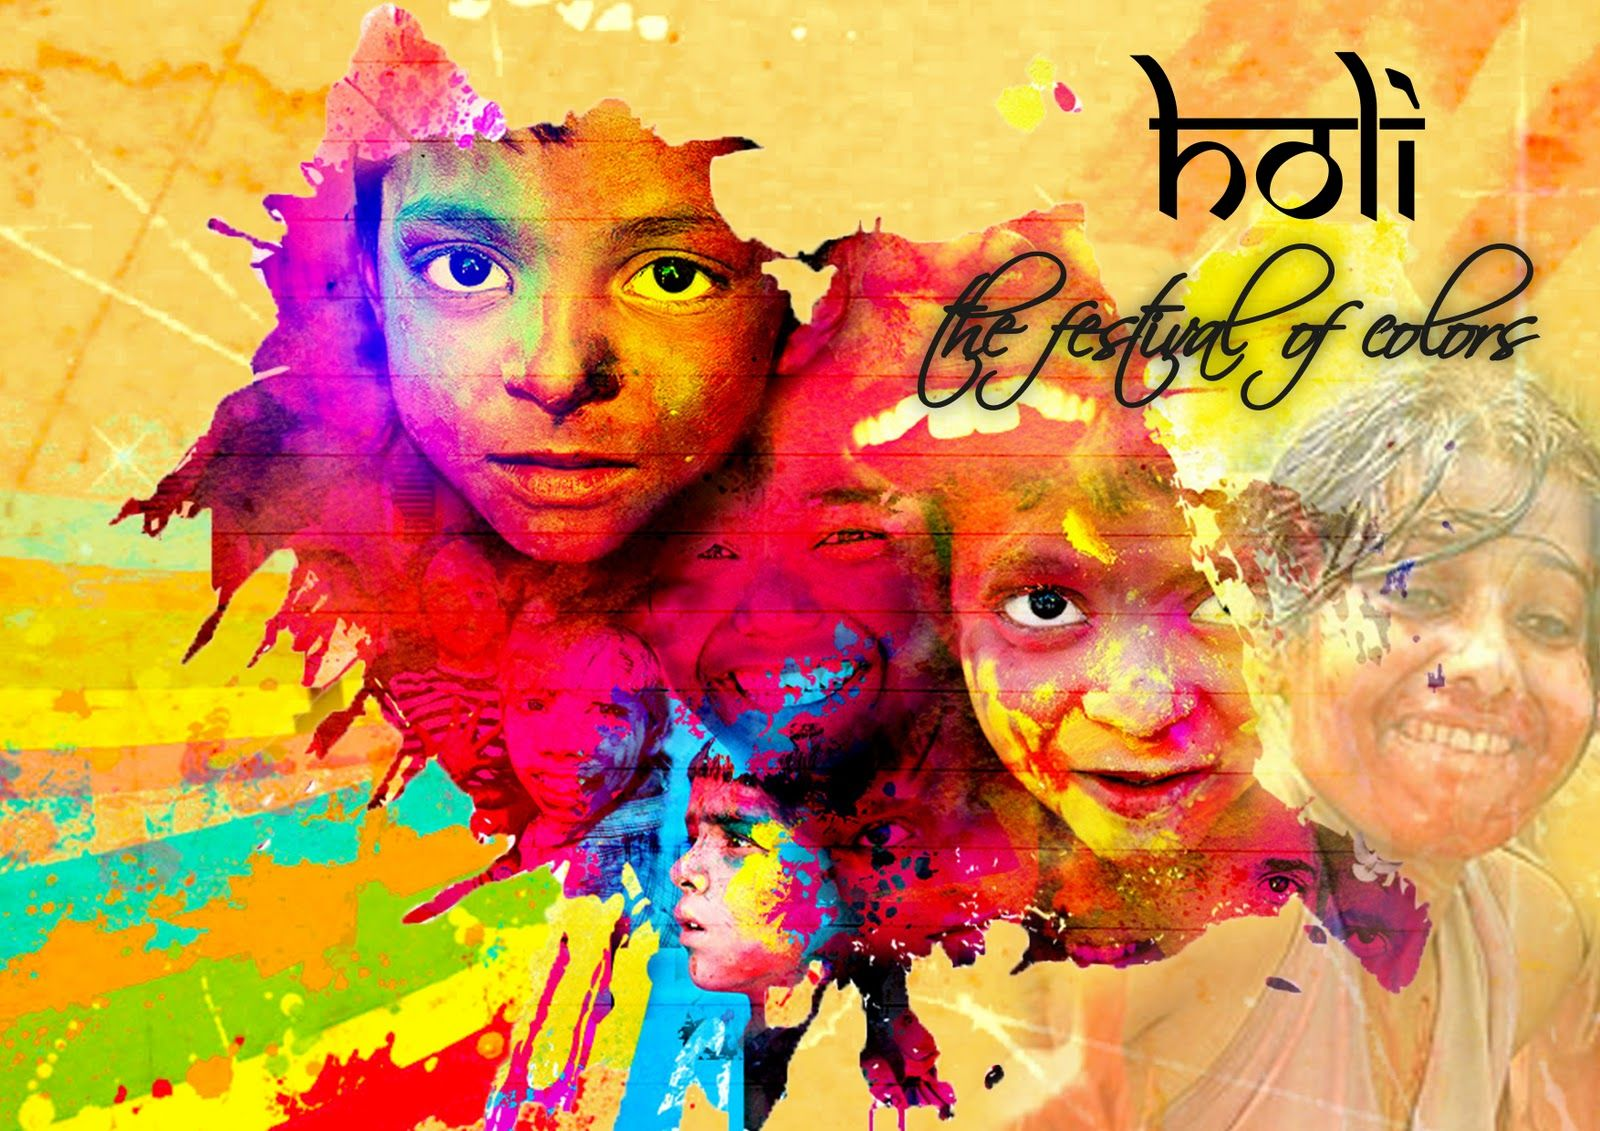 holi the festival of colors paint the world a sangam holi holi festival holi the festival of colors paint the world a